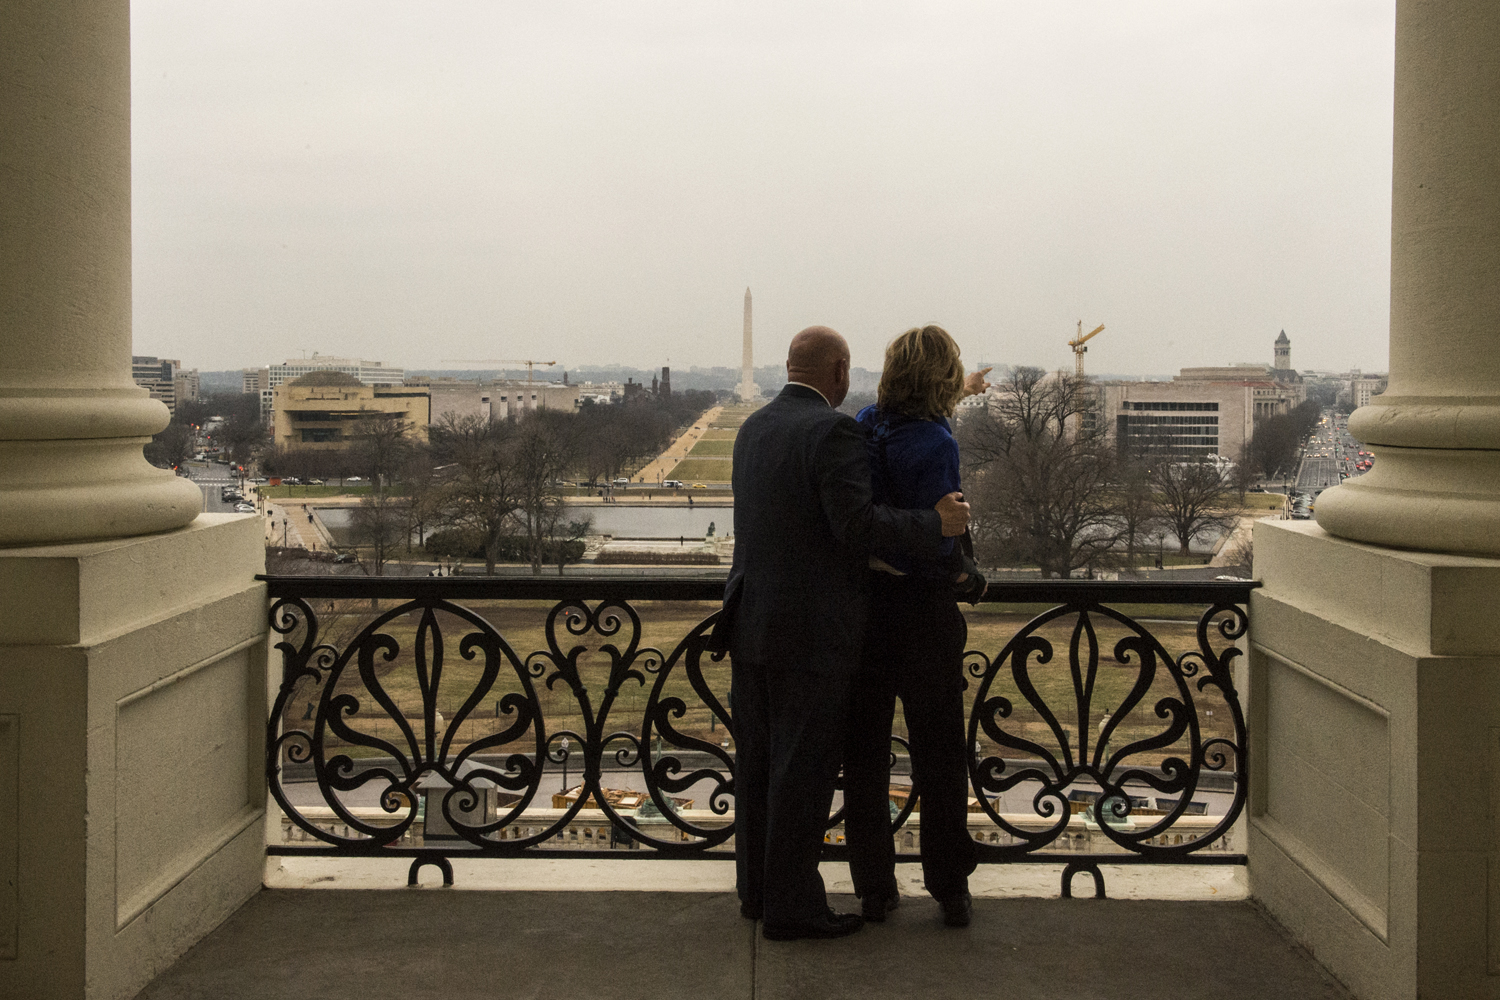 Feb. 13, 2013. Astronaut Mark Kelly and his wife former Congresswoman Gabrielle Giffords look out at the view from the Speaker's balcony while making the rounds to talk about the issue of gun violence on Capitol Hill in Washington, D.C.